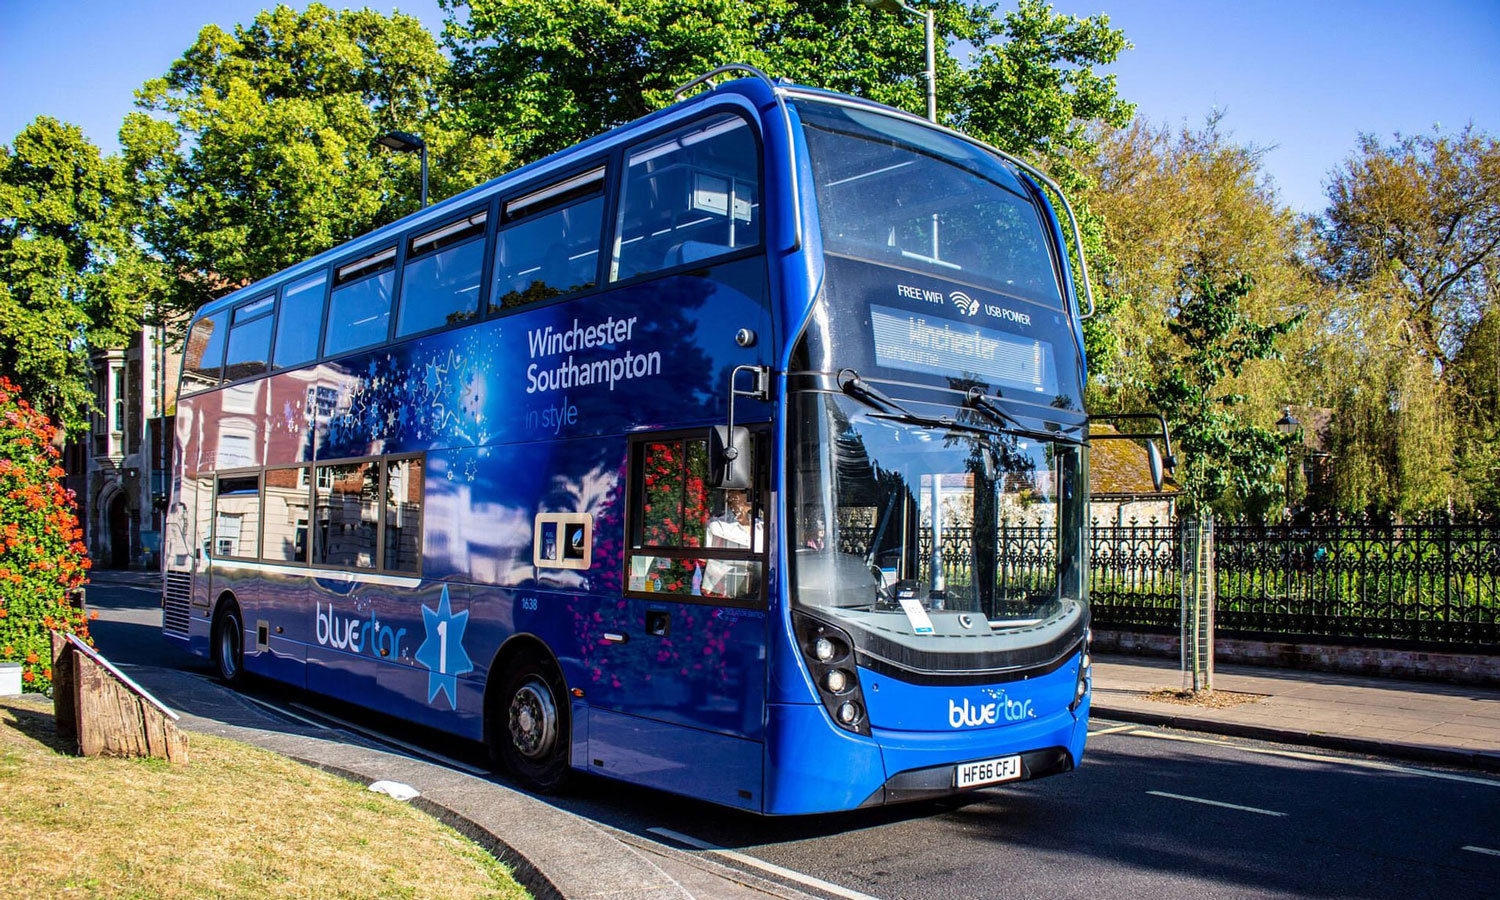 A New Uk Bus Traps Air Pollution As It Drives Yale E360